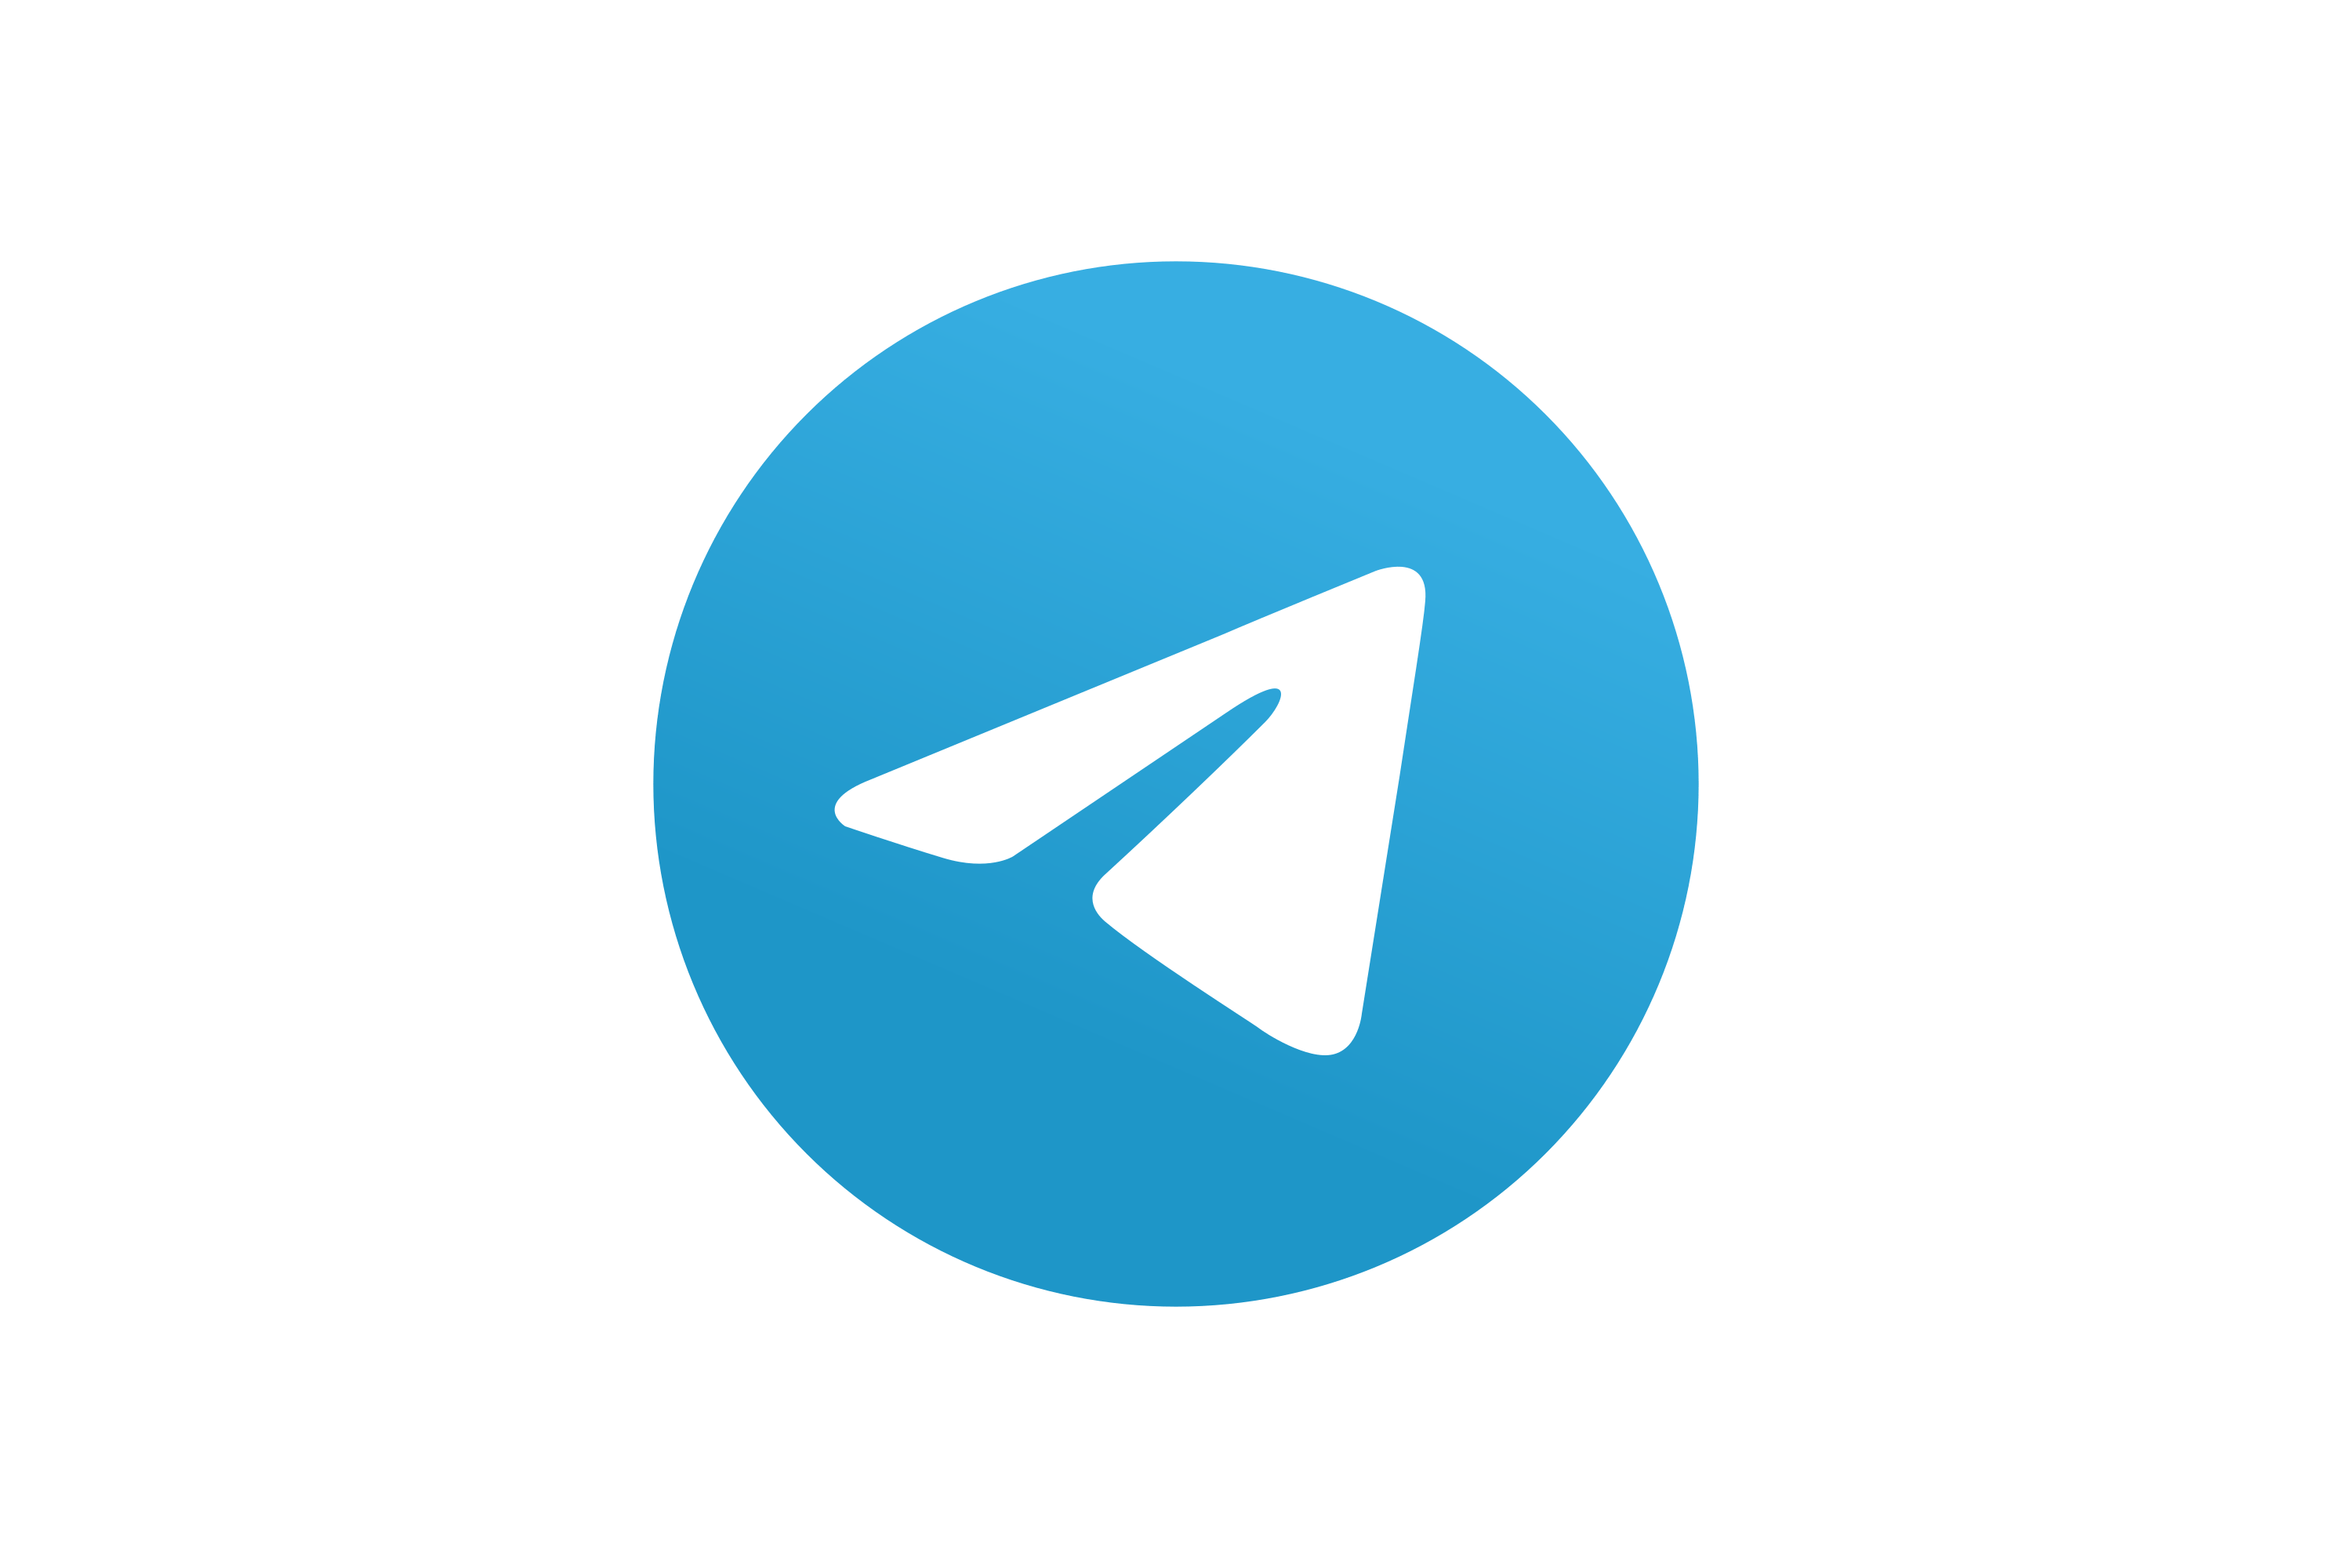 Telegram_(software)-Logo.wine.png